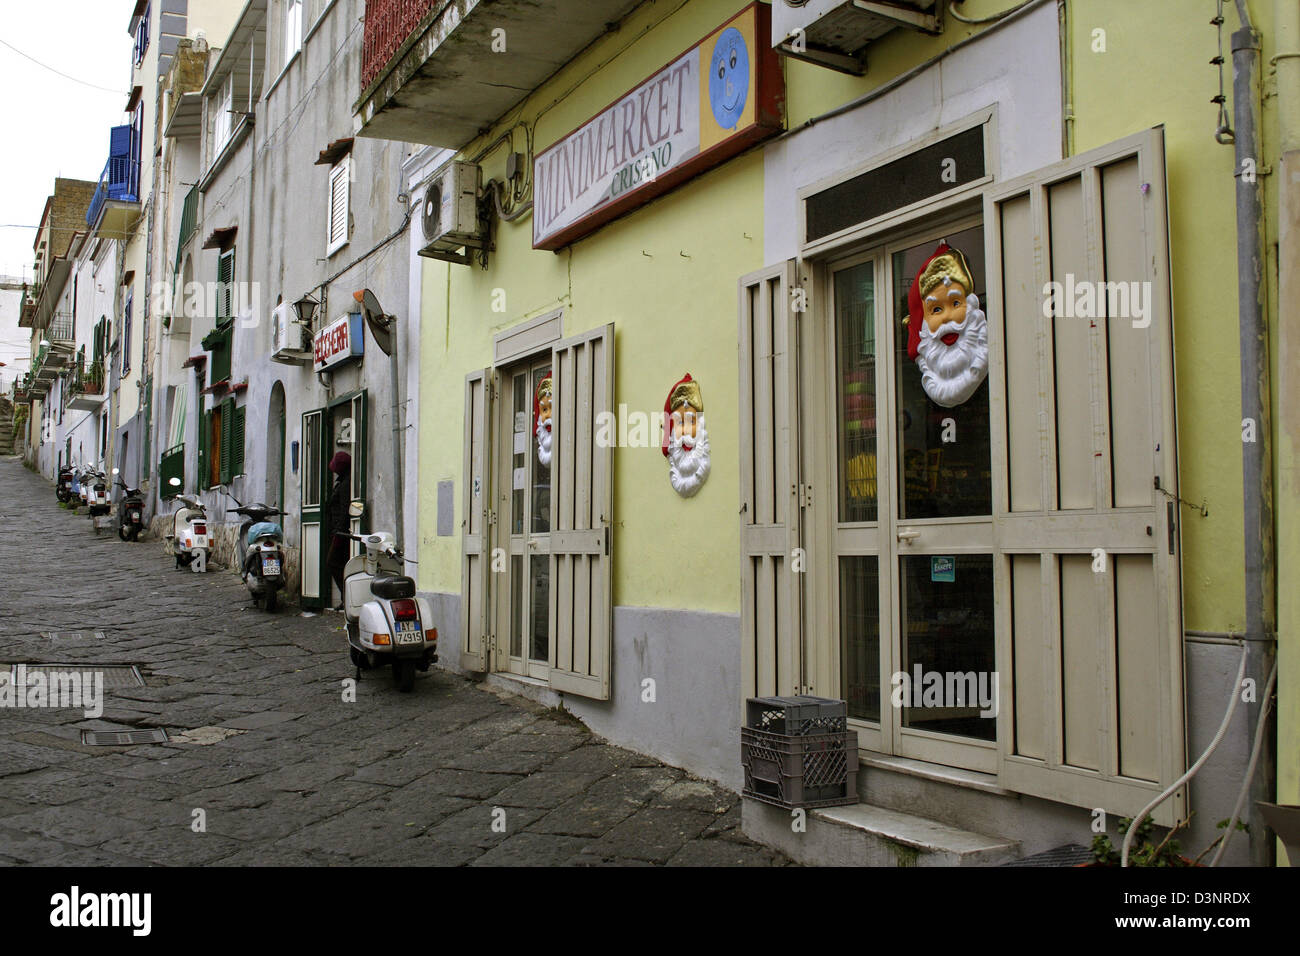 A Minimarket Decorated With Santa Claus Masks In Procida, Italy, 10  December 2005. Procida Is One Of Italyu0027s Smallest Islands Next To Capri And  Ischia.